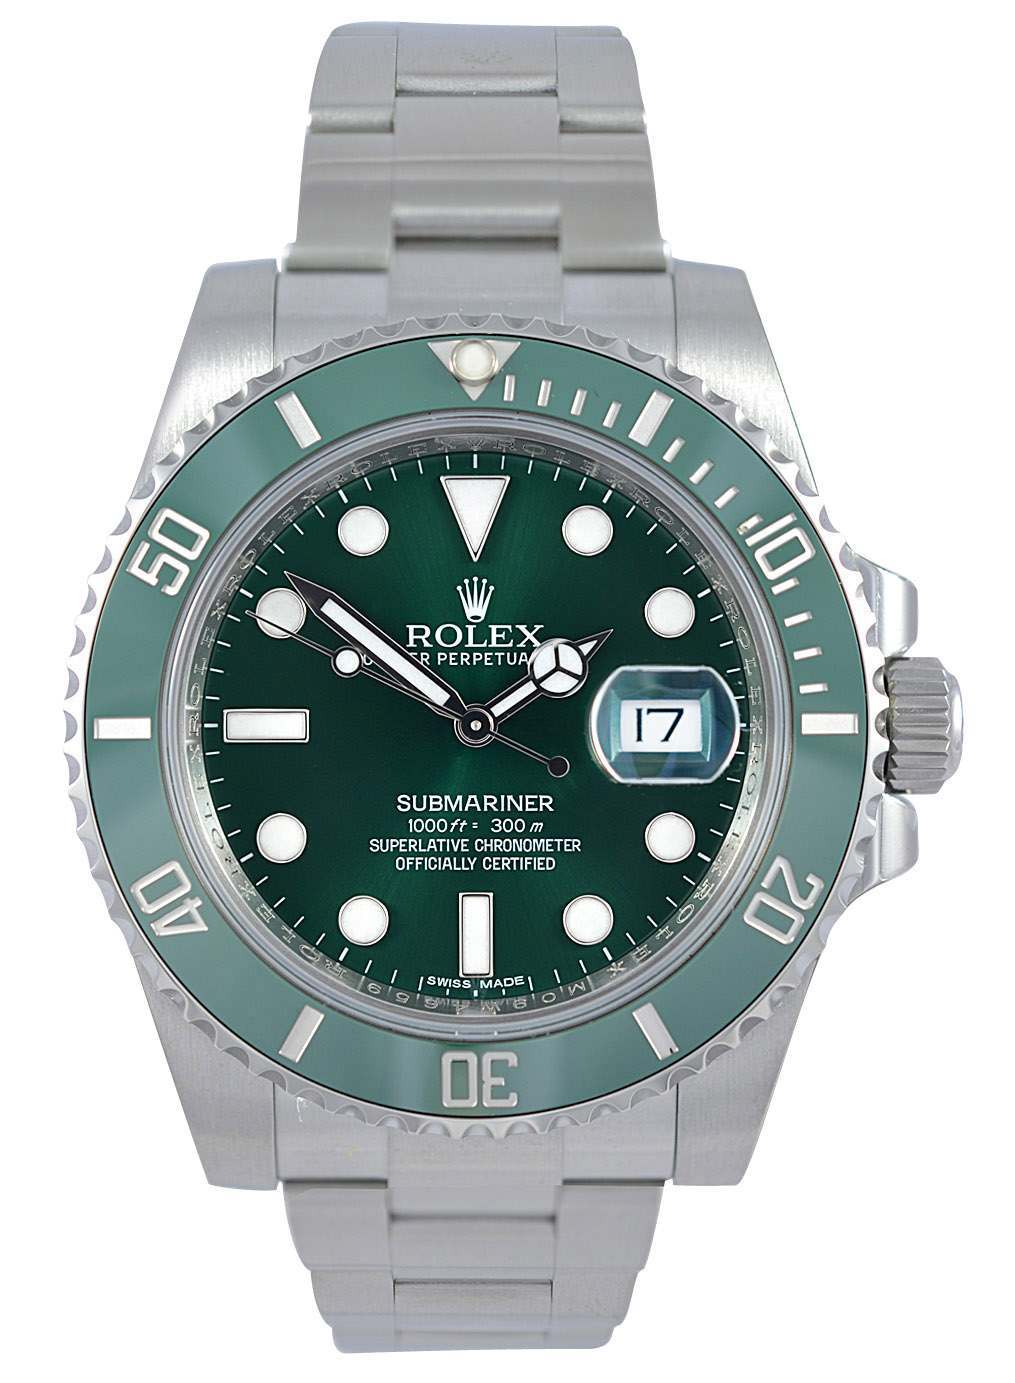 buy automatic oyster online lk shop index warranty rolex mariner choice roxel submariner perpetual aaa grade men k watch s watches srilanka blue year sub my silver